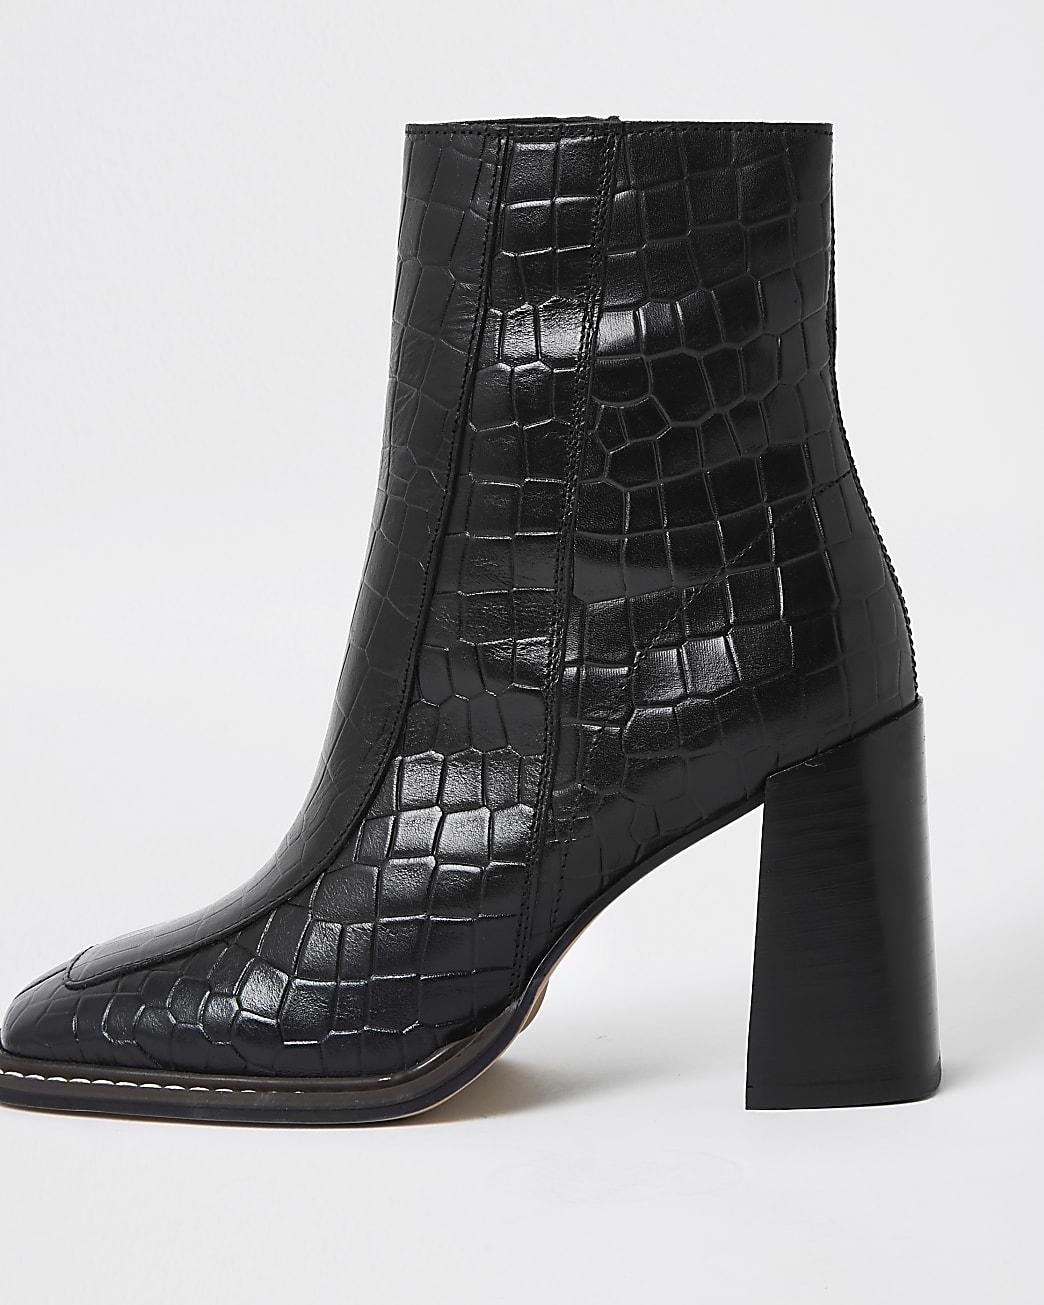 Black square toe leather ankle boots